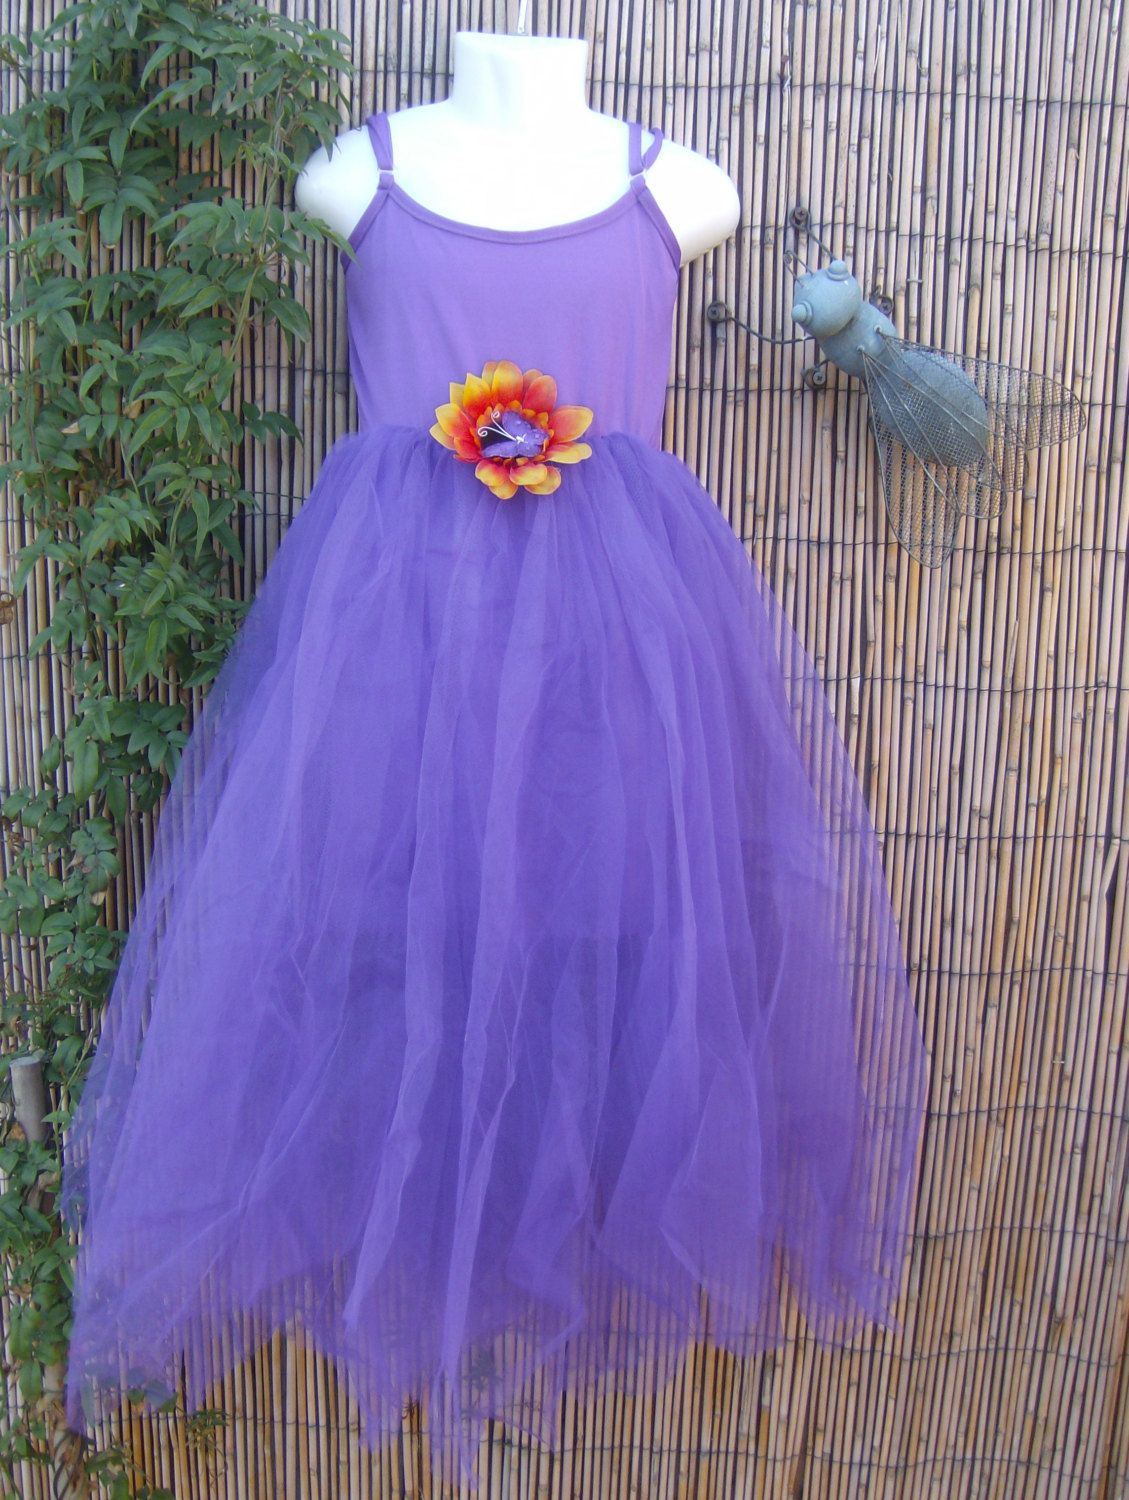 Purple Fairy Princess Dress Size Small 4t To 6 And By Pixihollow 38 00 Flower Girl Dresses Princess Dress Trending Outfits [ 1500 x 1129 Pixel ]